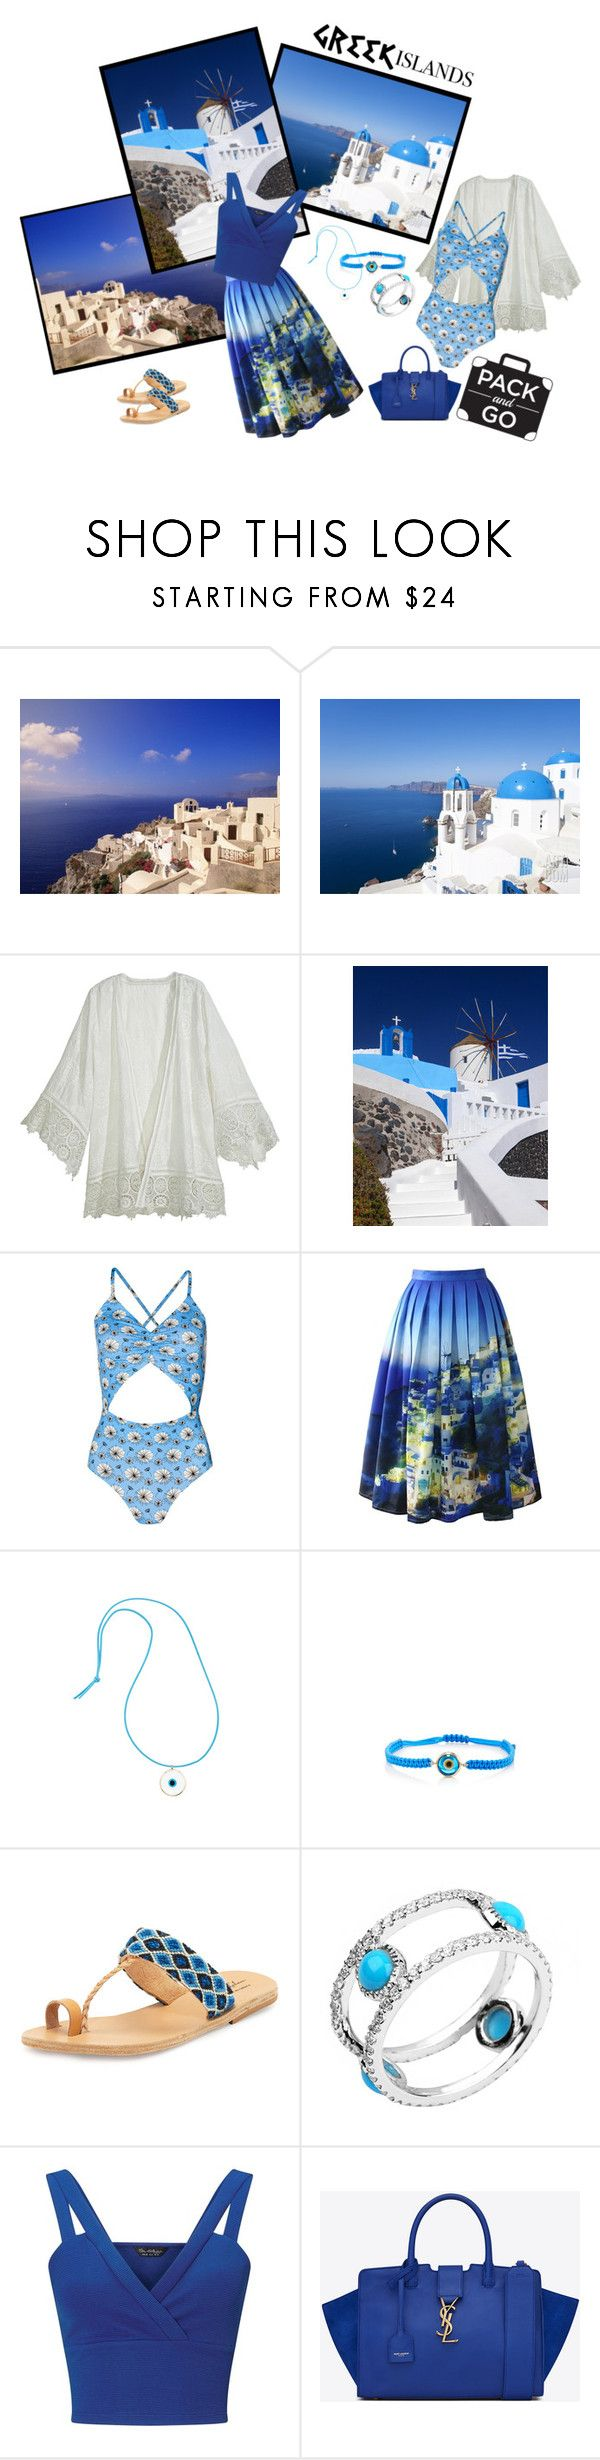 """Pack and Go: Greek Islands"" by sue-wilson1967 ❤ liked on Polyvore featuring Calypso St. Barth, Chicwish, Elena Votsi, Elina Lebessi, Avanessi, Miss Selfridge, Yves Saint Laurent, Packandgo and greekislands"